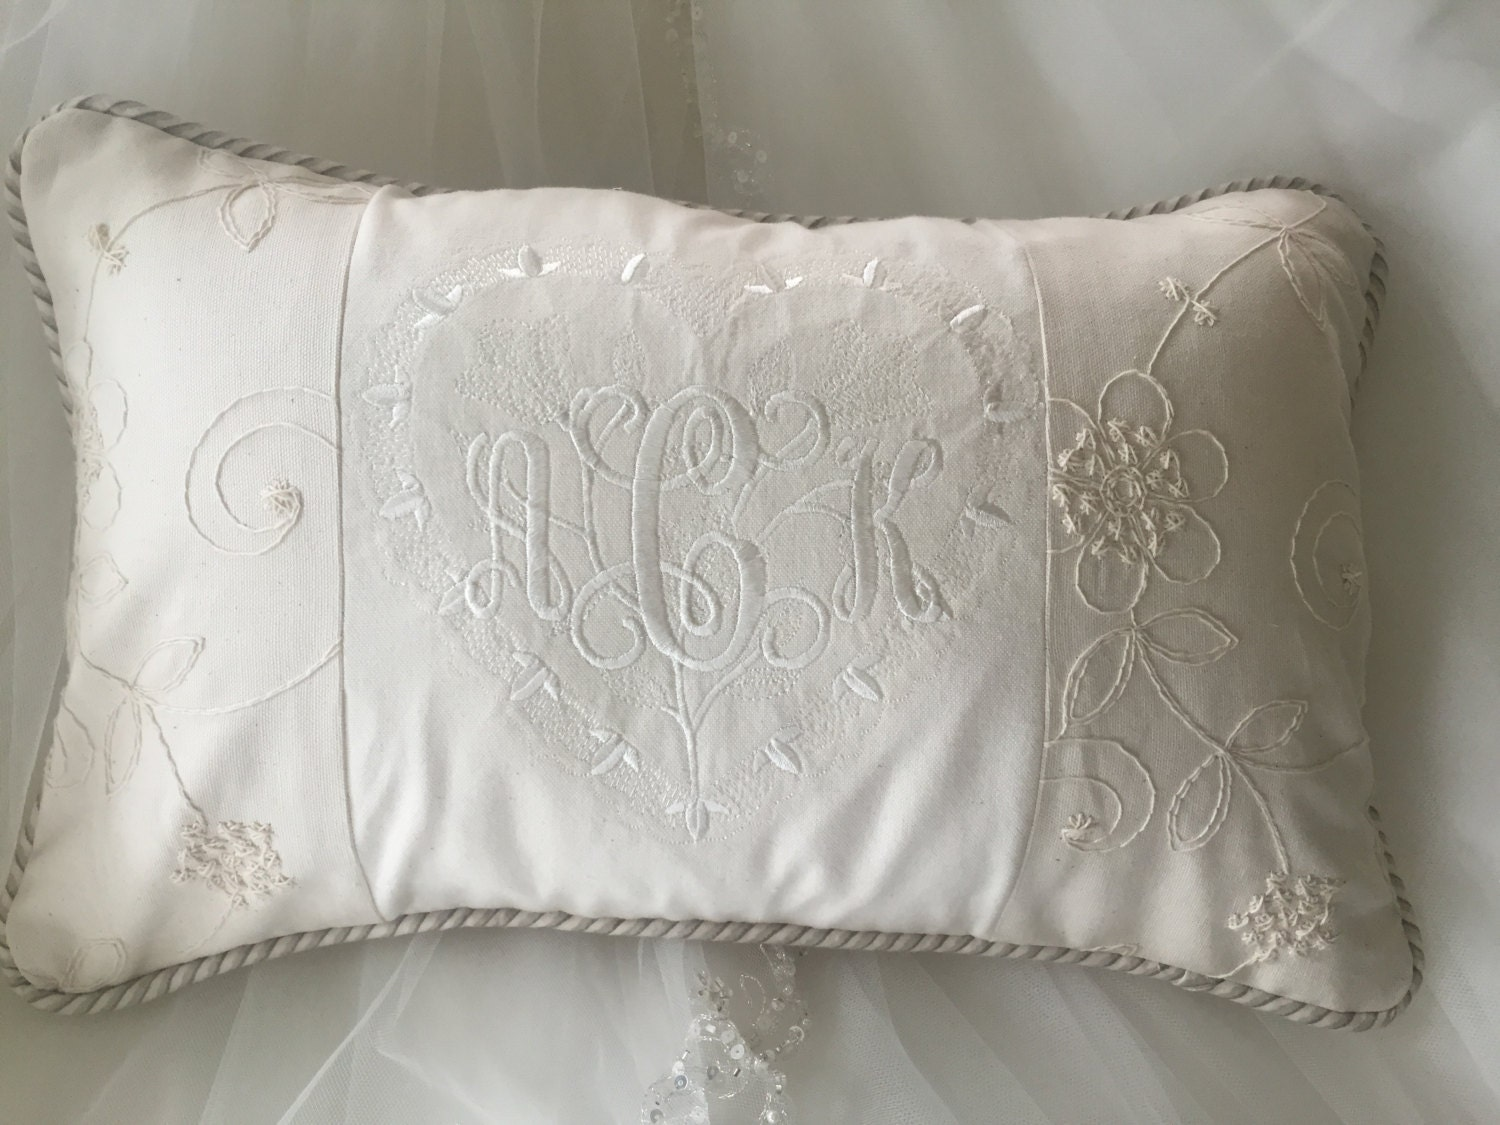 Decorative Pillows With Monogram : Wedding or Anniversary Monogrammed Decorative Pillows